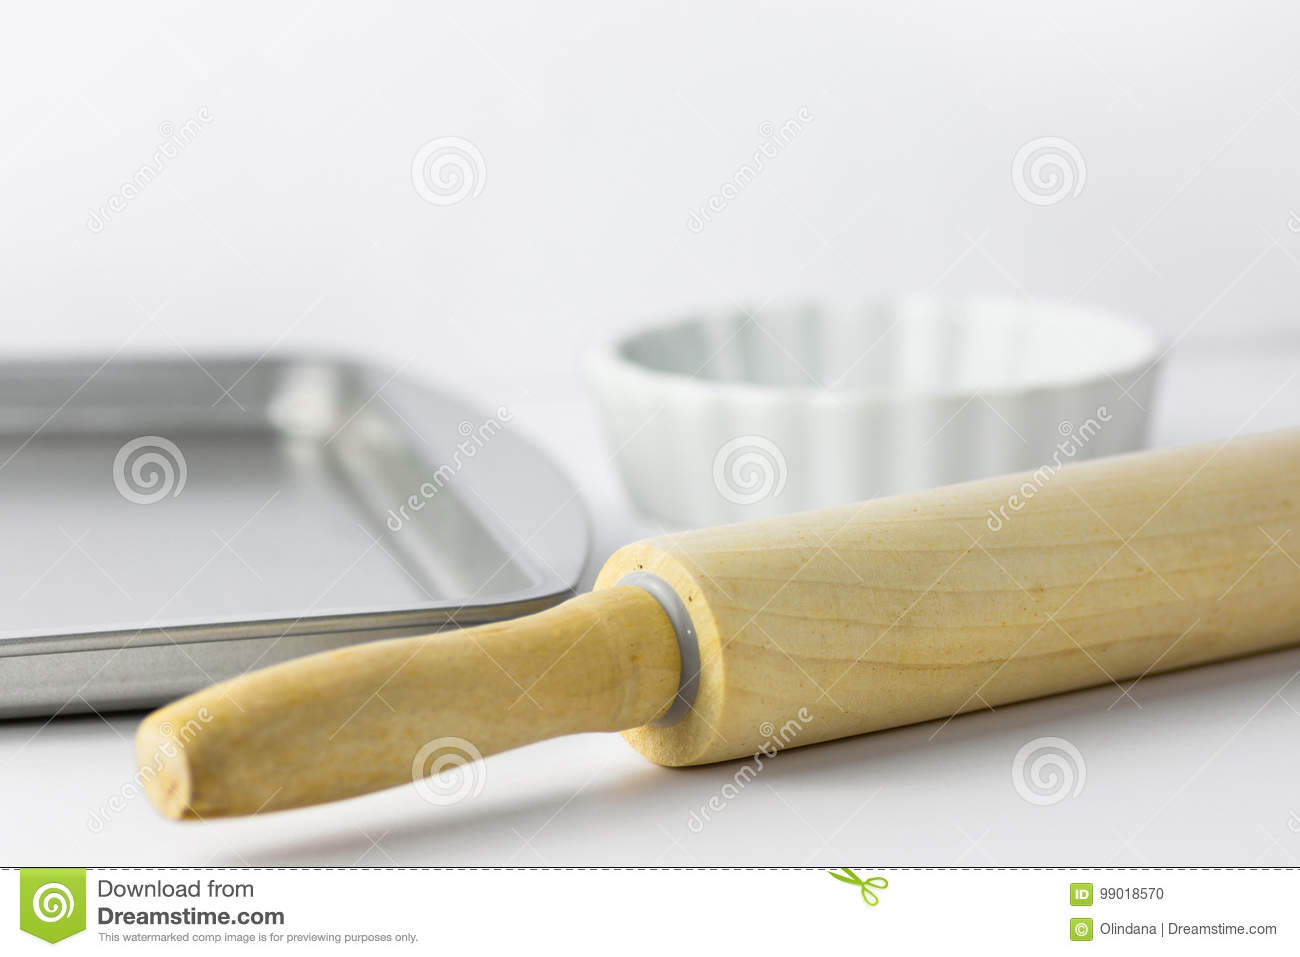 Metal Grey Baking Tray And Form Wooden Rolling Pin On White